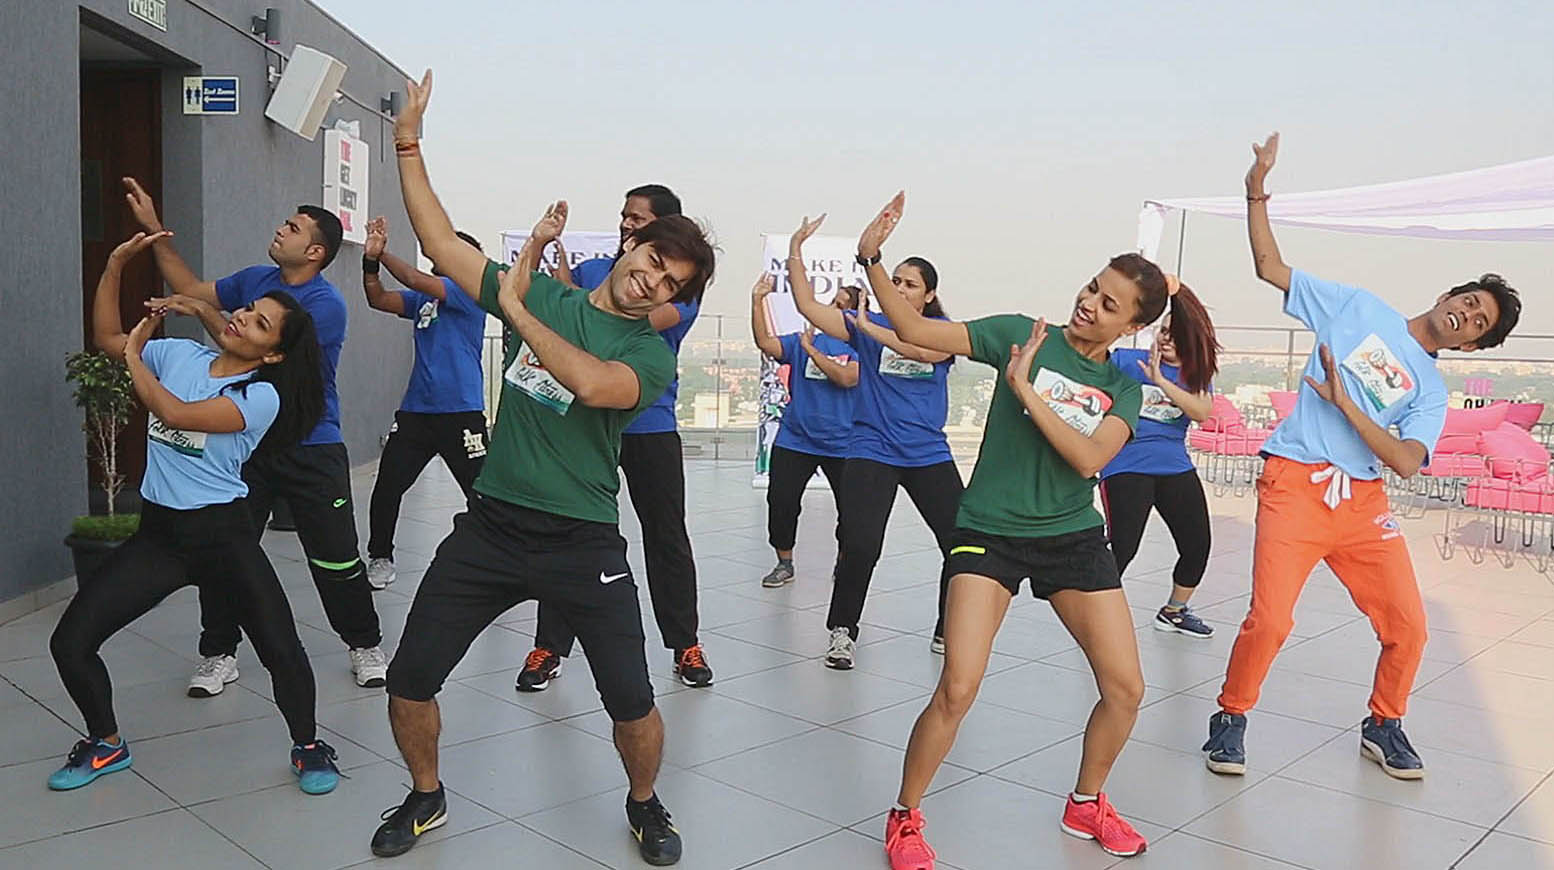 ​Folk Fitness to create 1.2 lakh instructors pan-India in next 5 years